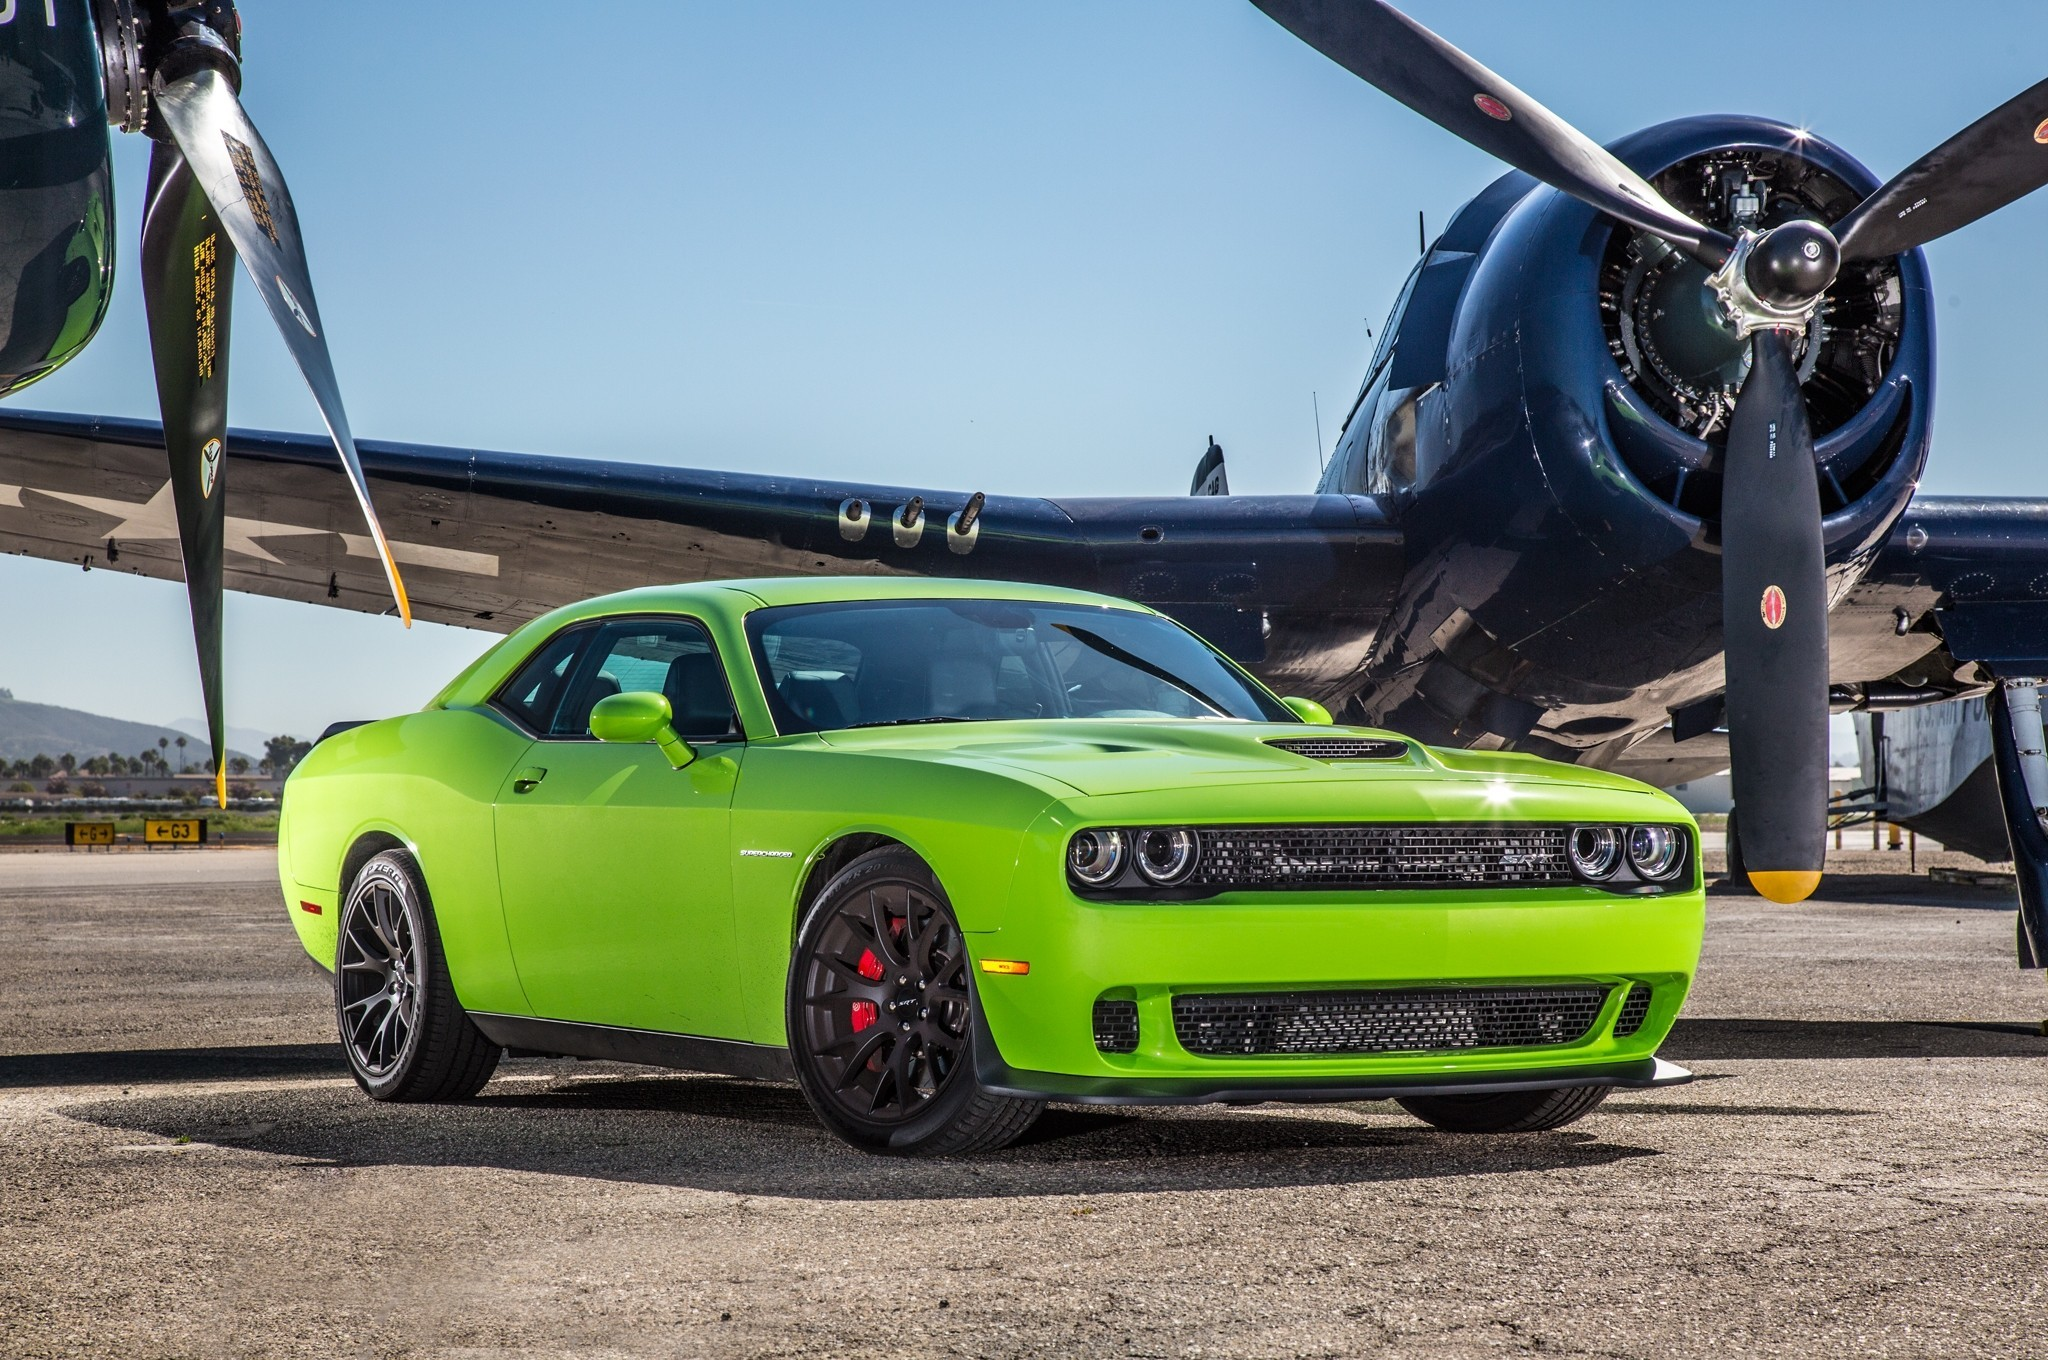 2048x1360 8 2015-Dodge-Challenger-SRT-Hellcat-HD-Wallpapers-1024x680